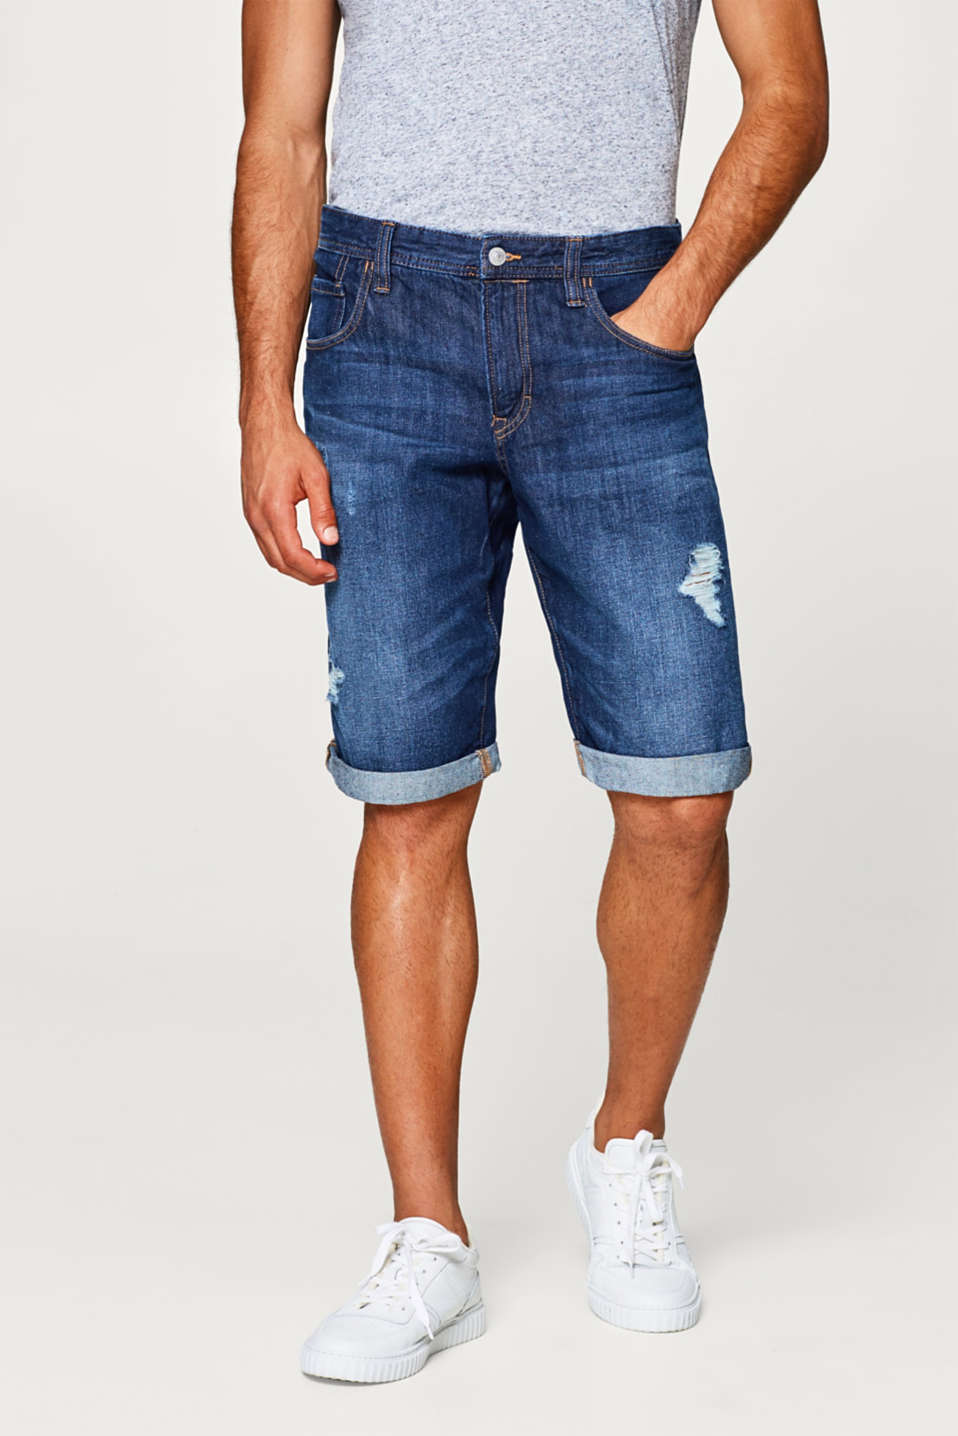 edc - Denim shorts with distressed effects, made of cotton